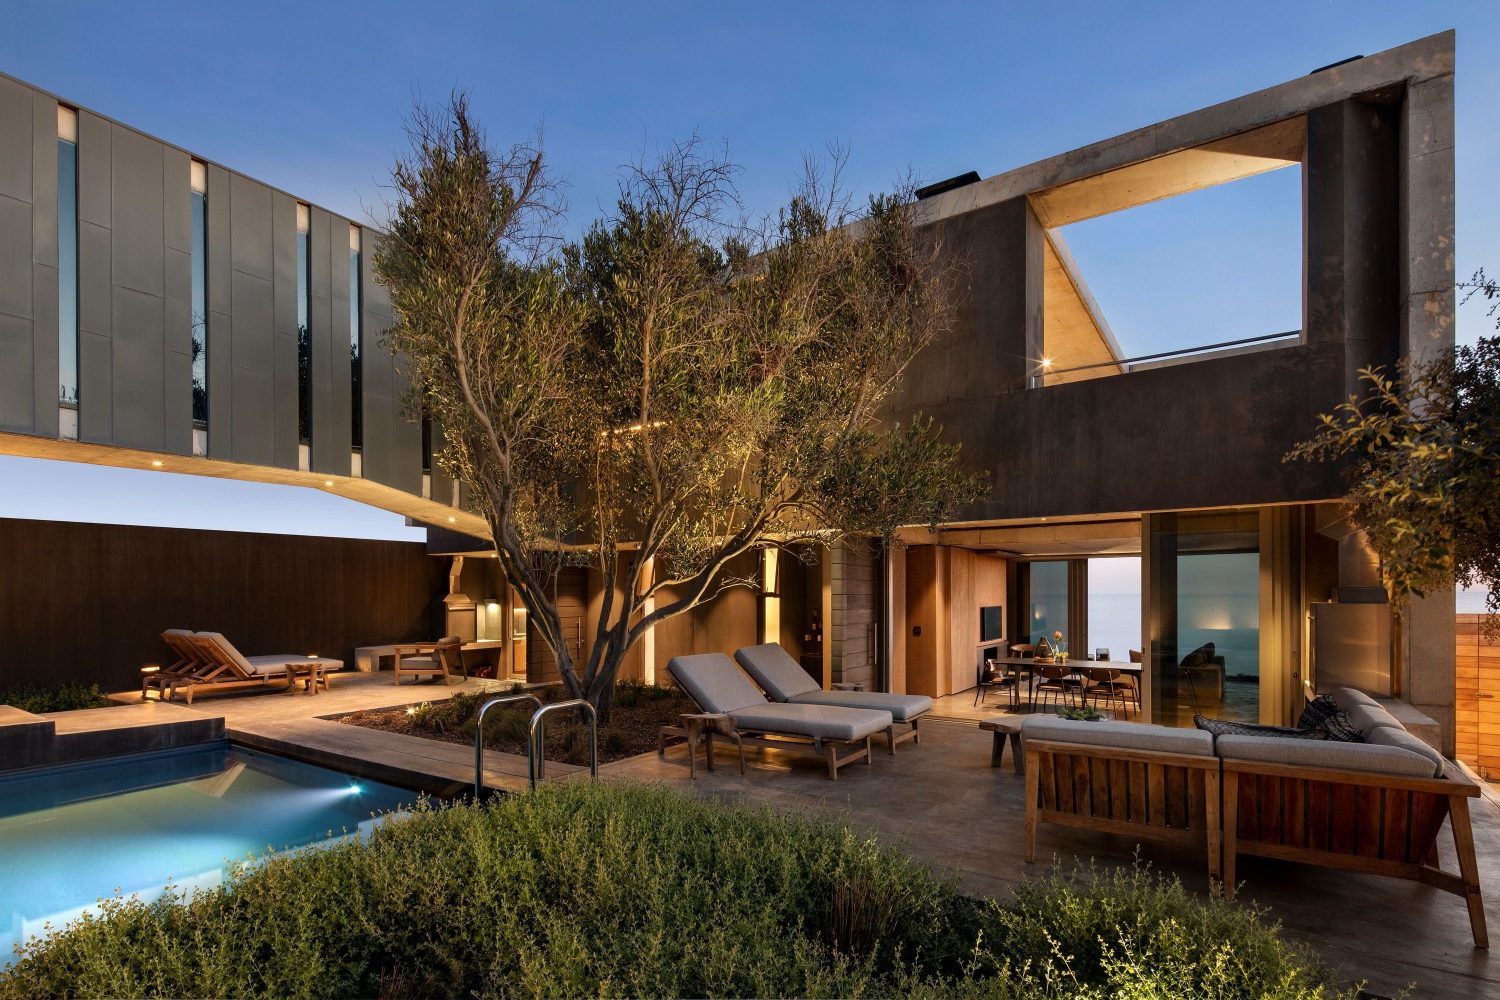 Olive Tree Villa by Gavin Maddock Design Studio